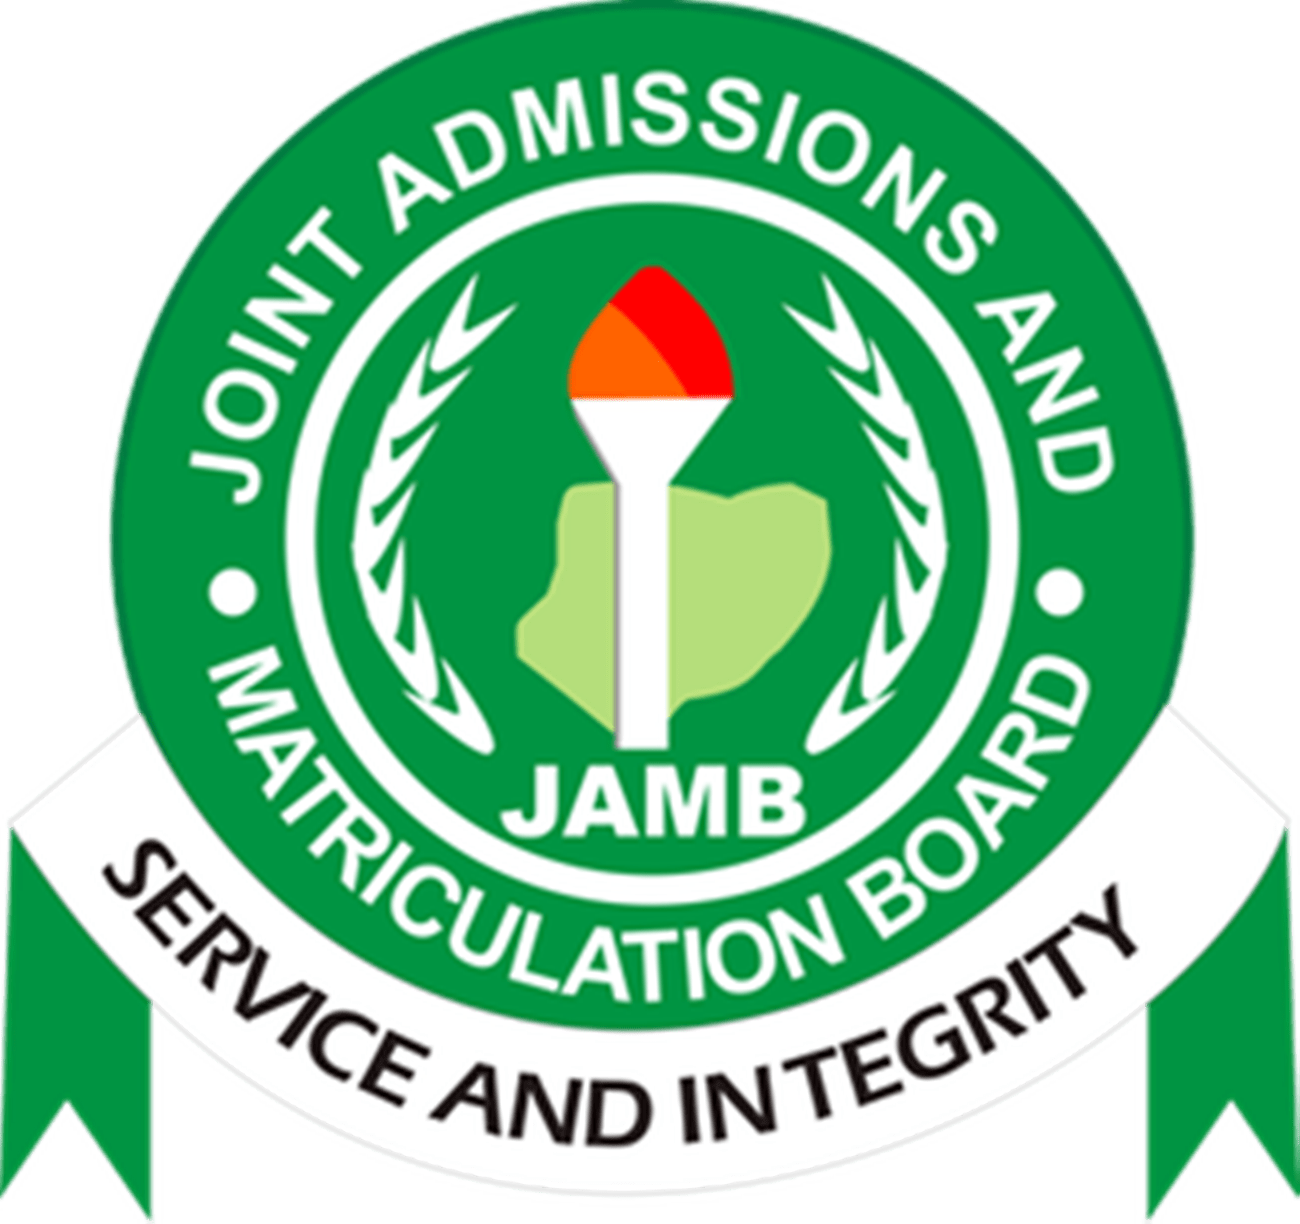 JAMB holds virtual policy meeting June 16